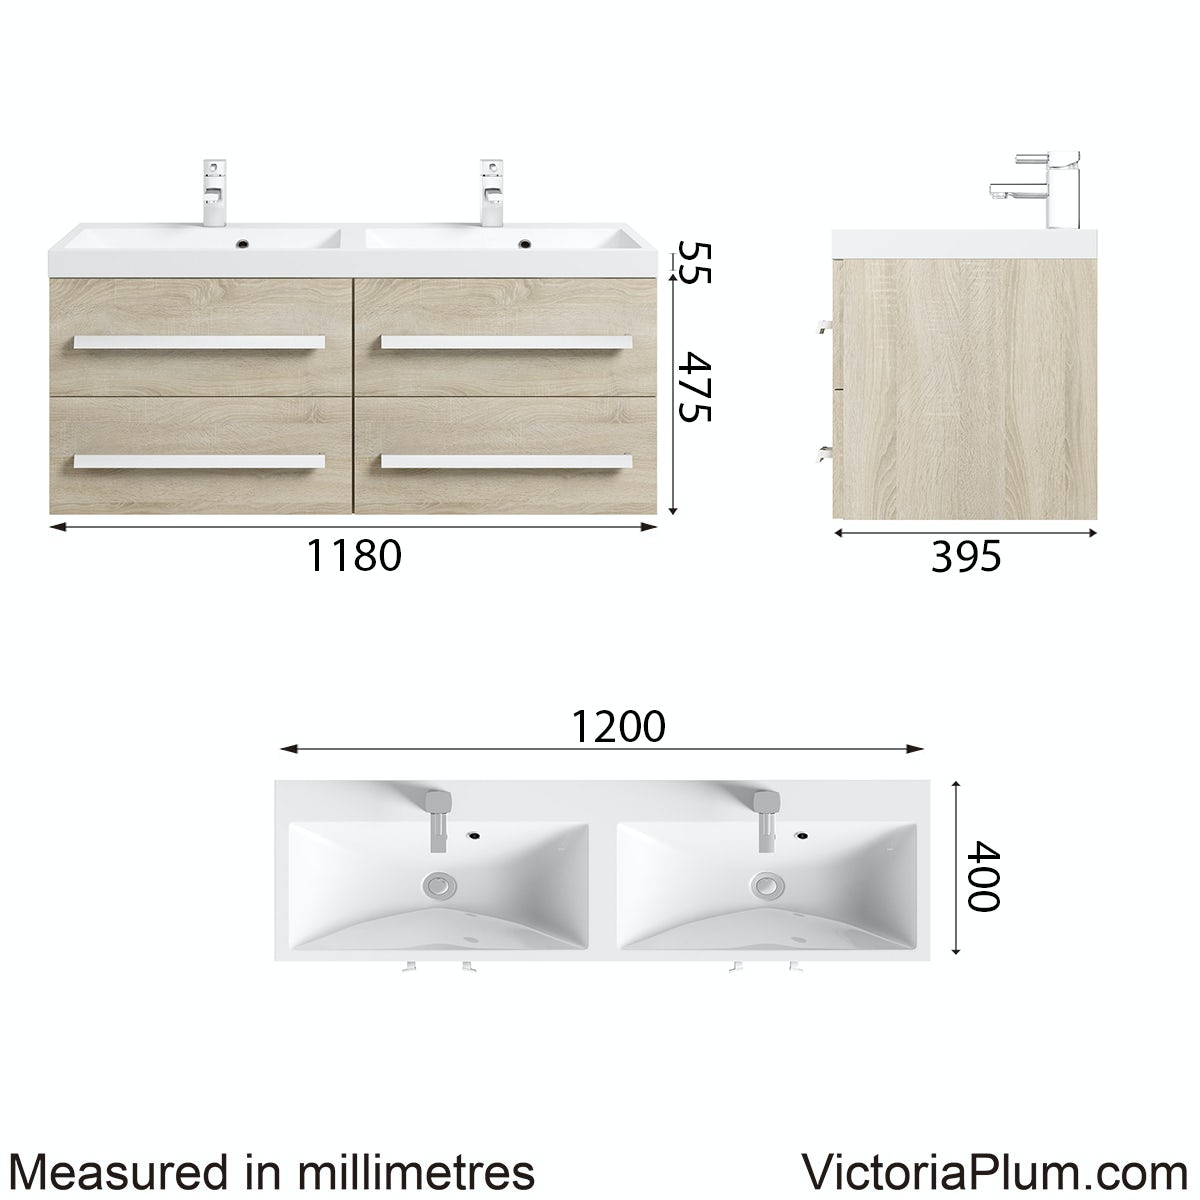 Dimensions for Orchard Wye oak wall hung double basin unit 1200mm